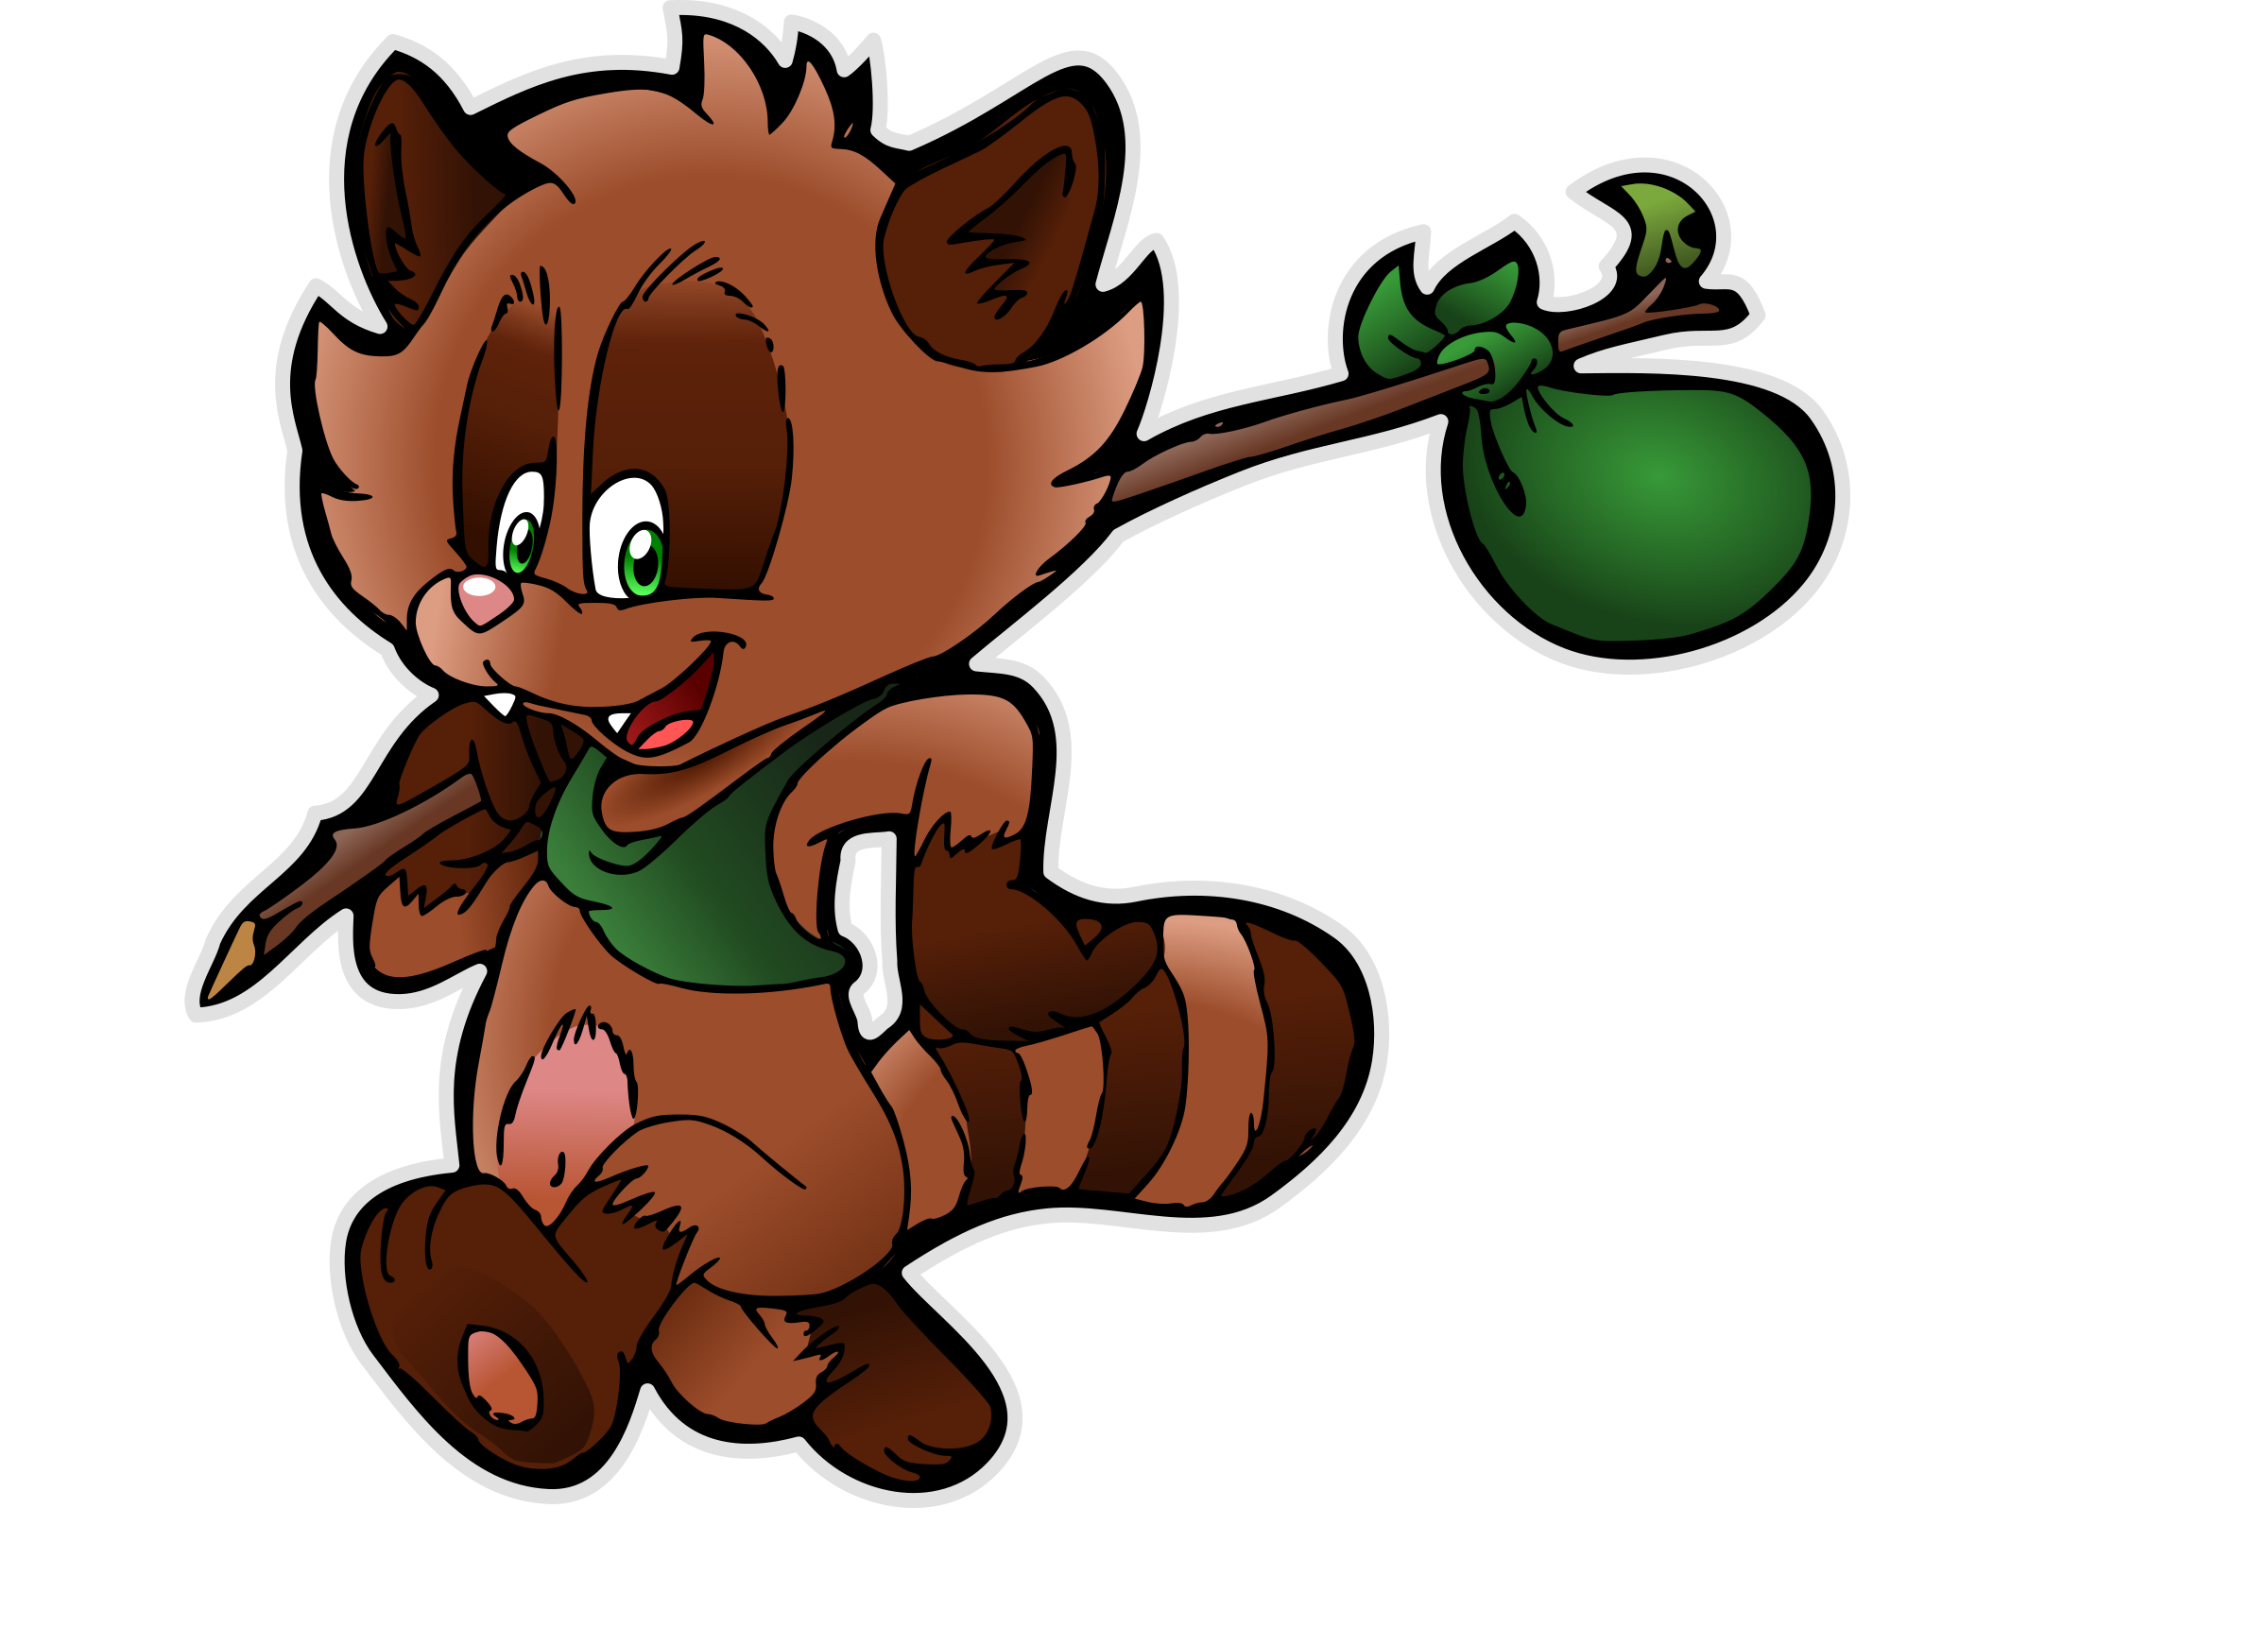 Happy Tanuki 2 (without background) by Schade